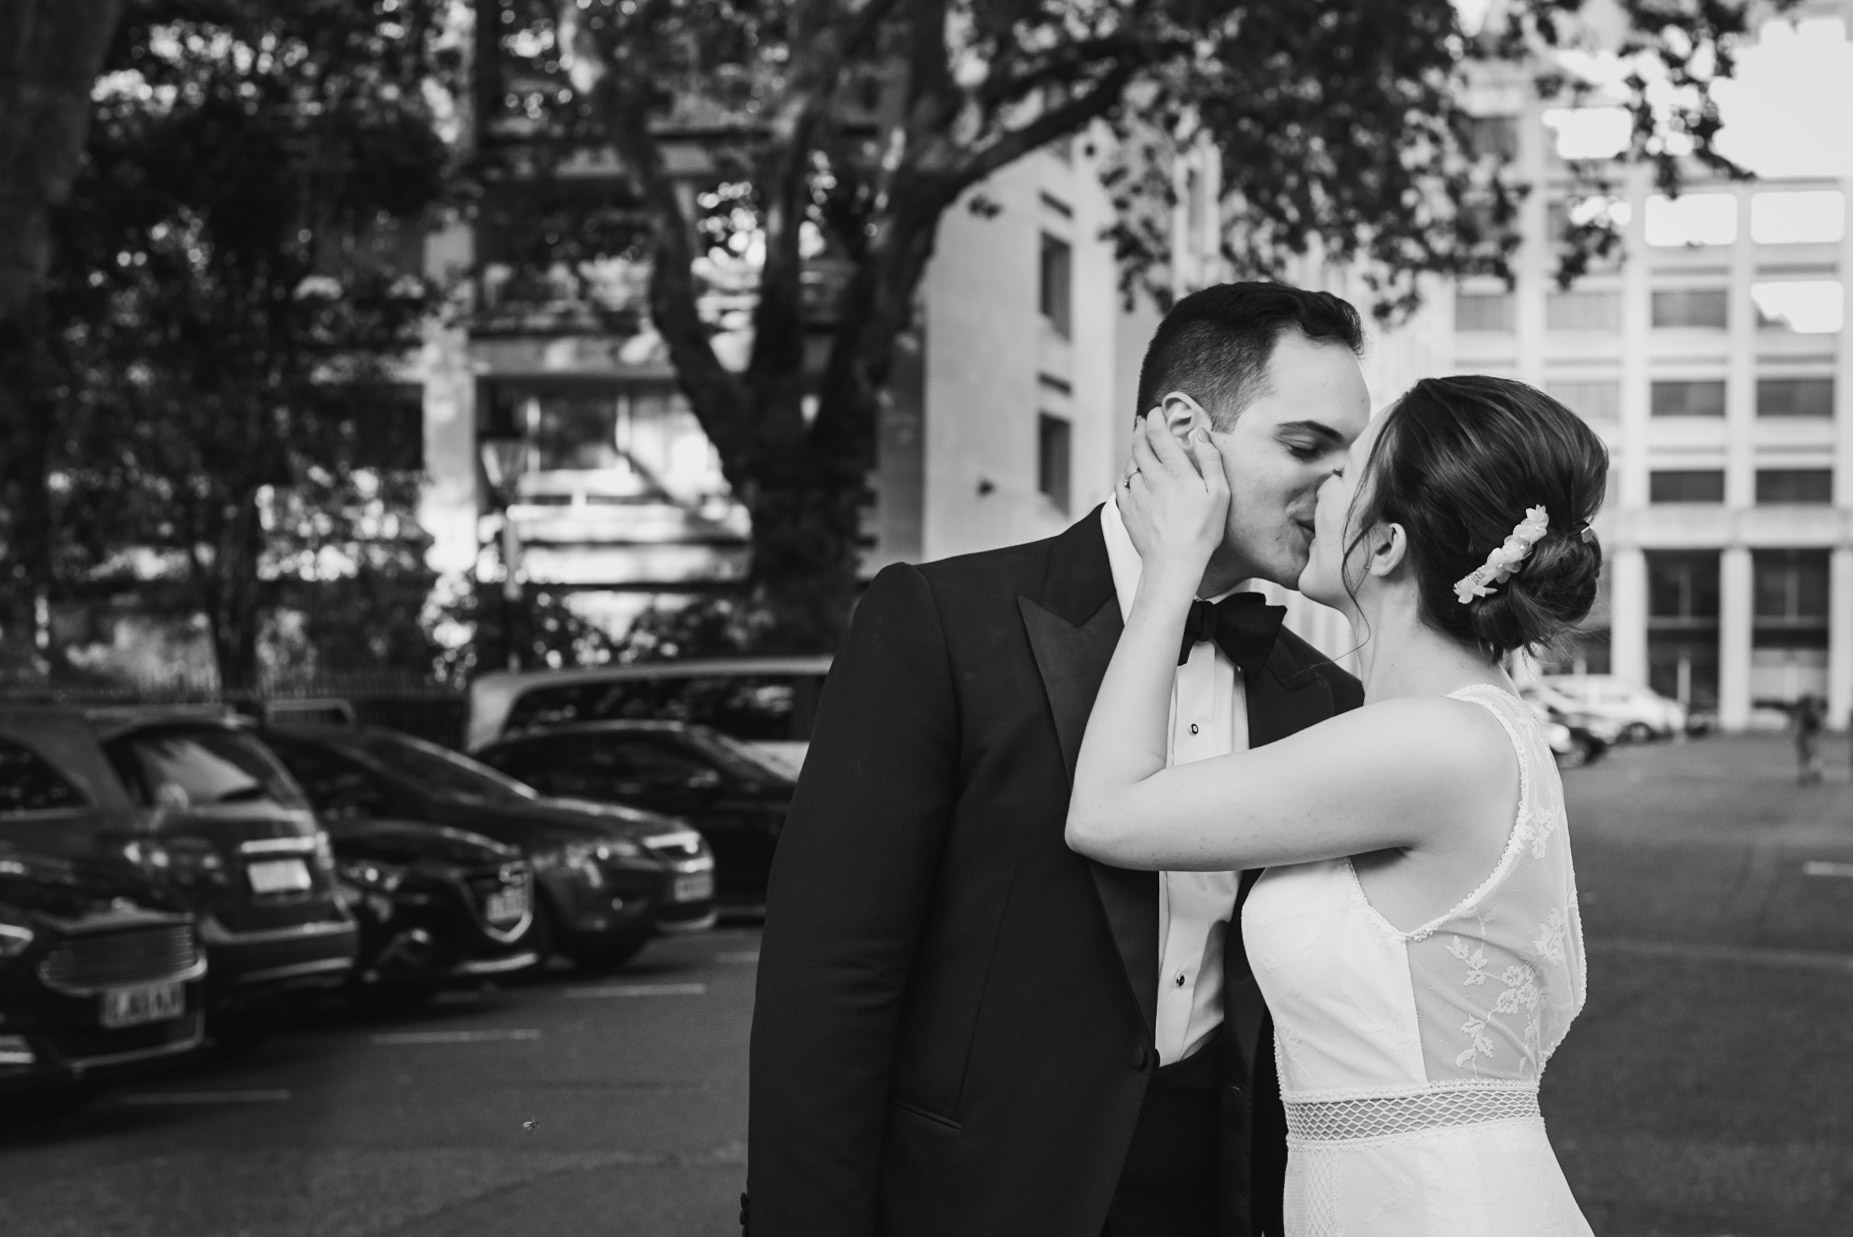 carine bea photography, couple portraits wedding Carlton House Terrace London